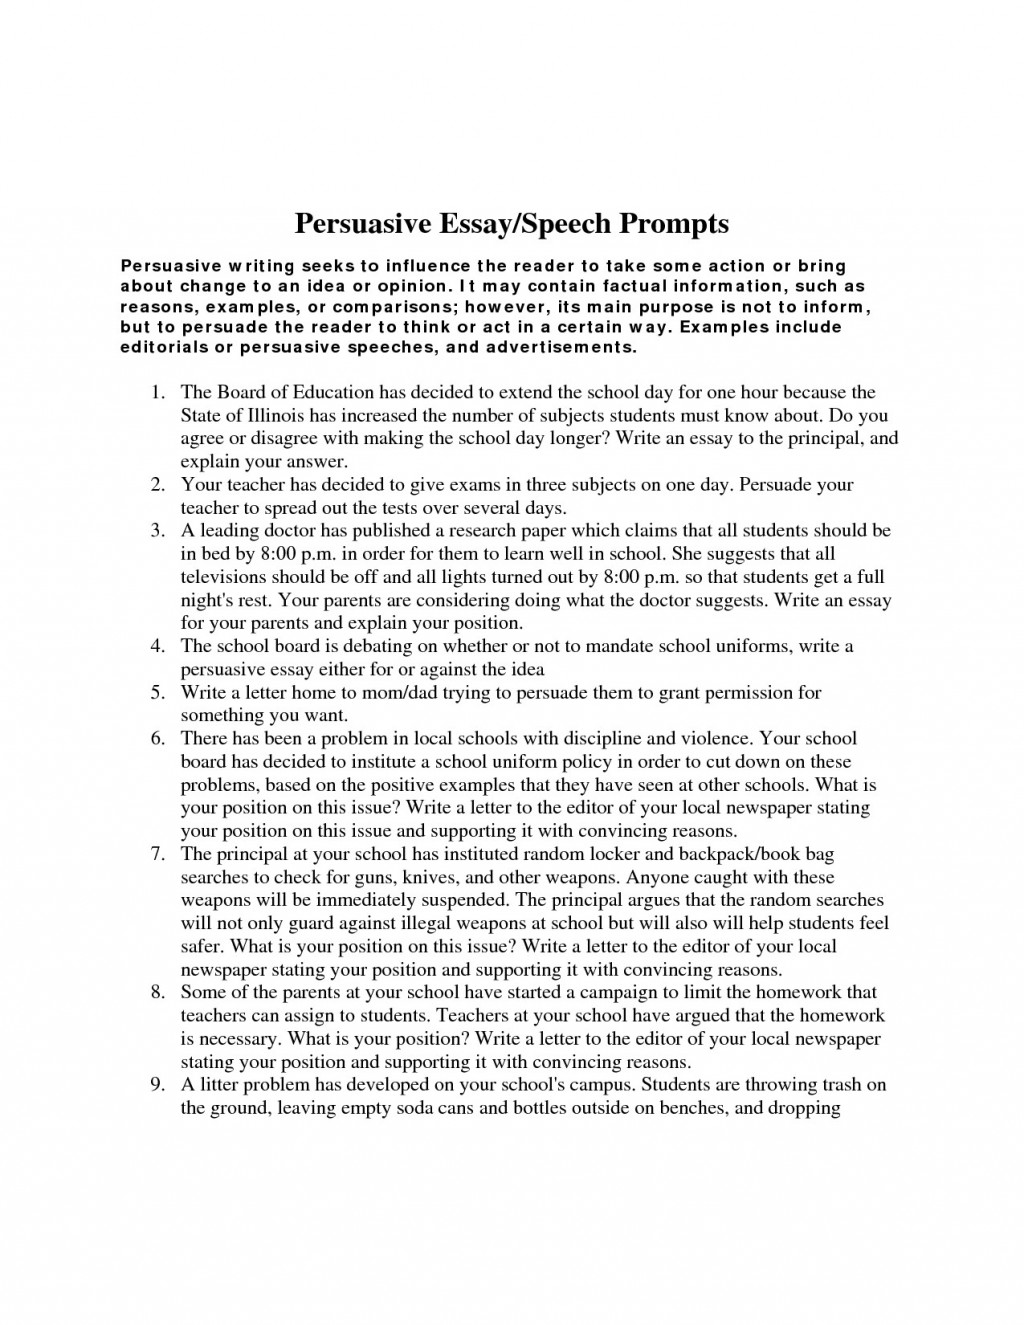 011 Argumentative Essay Topics Middle School Persuasive Prompts Unique Easy For With Articles Funny Large